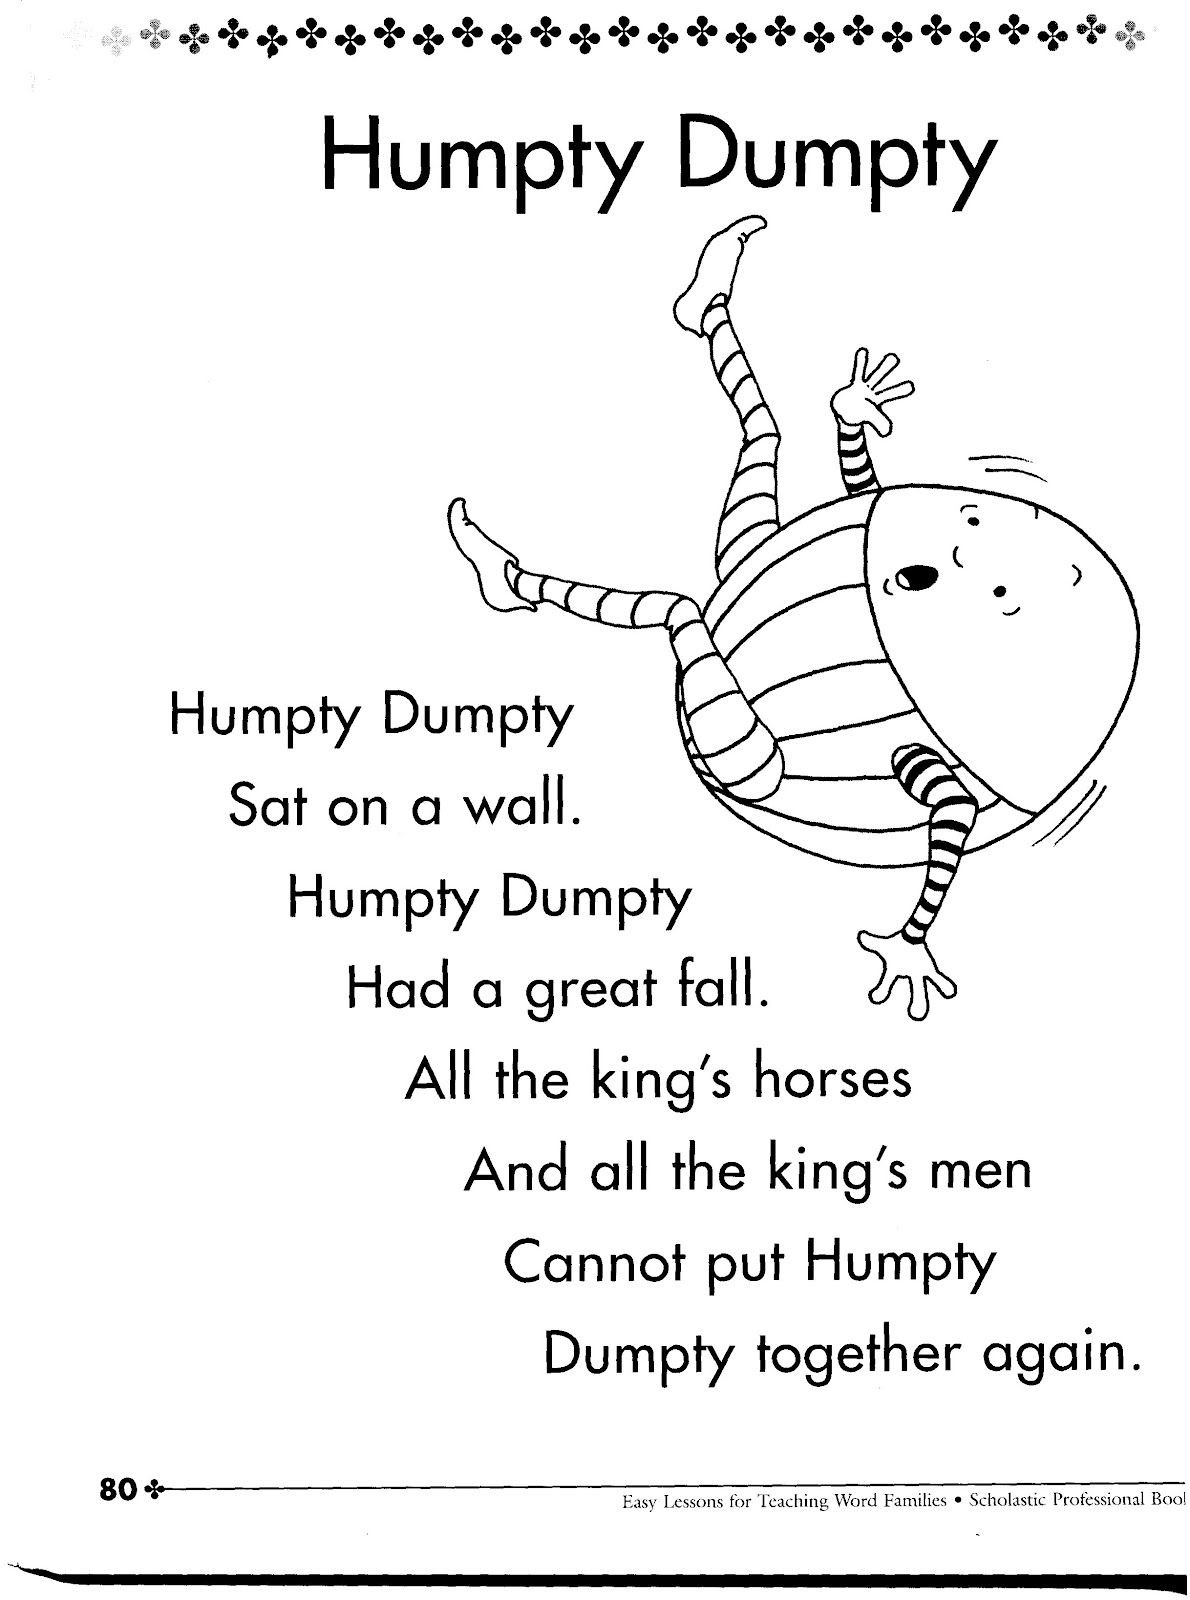 Humpty Dumpty Nursery Rhyme Printable &